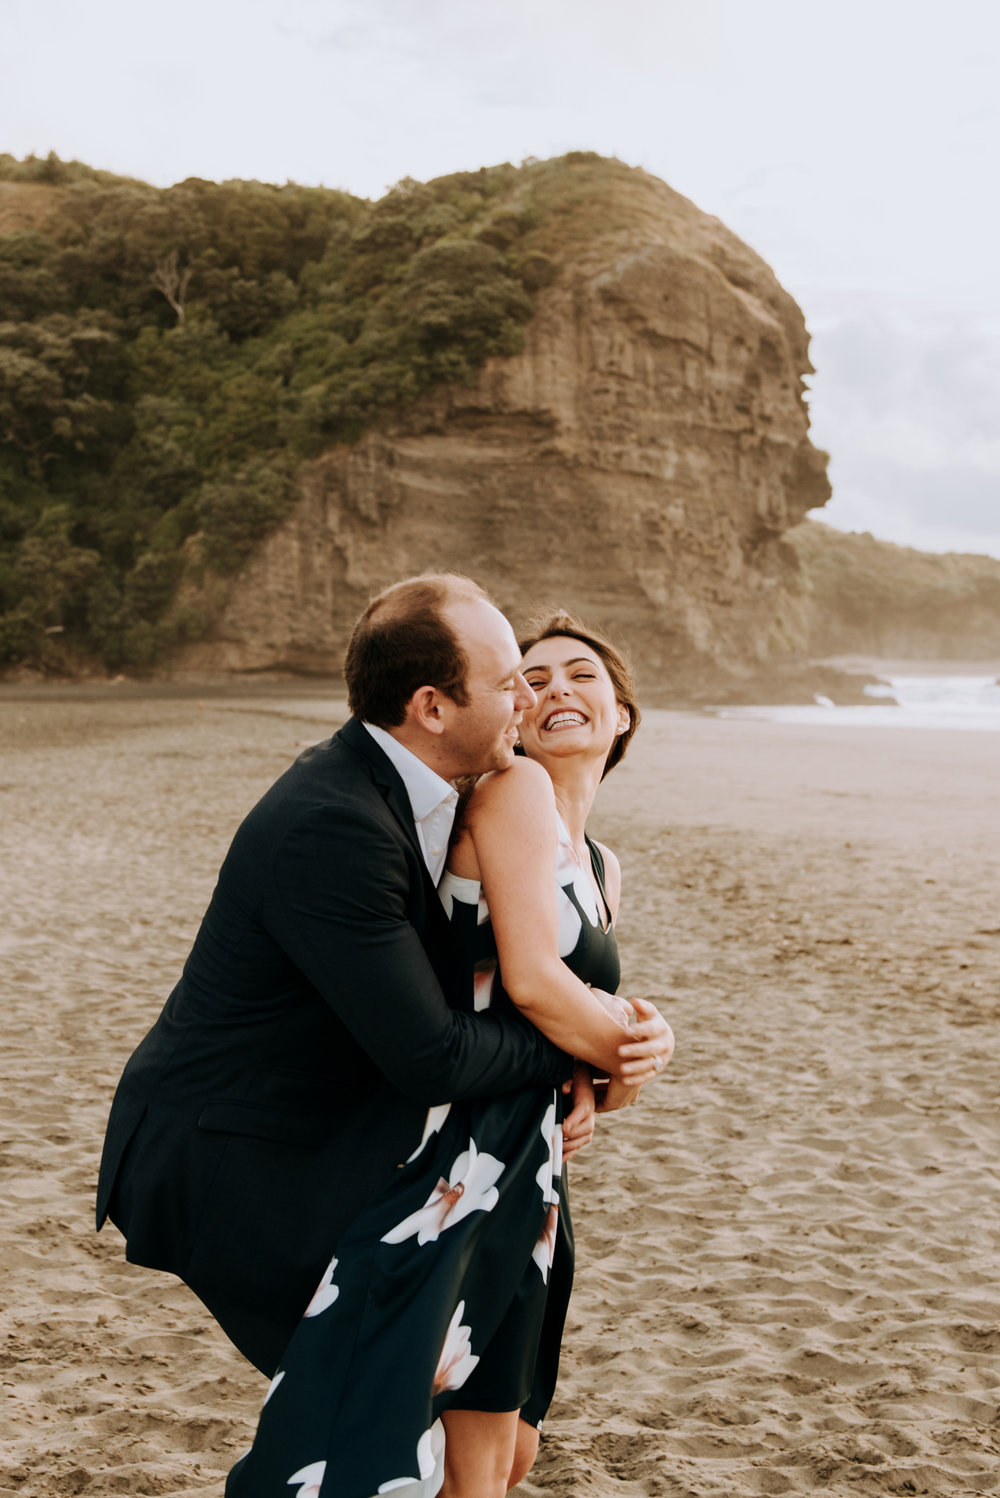 I love these top New Zealand elopement wedding spots.